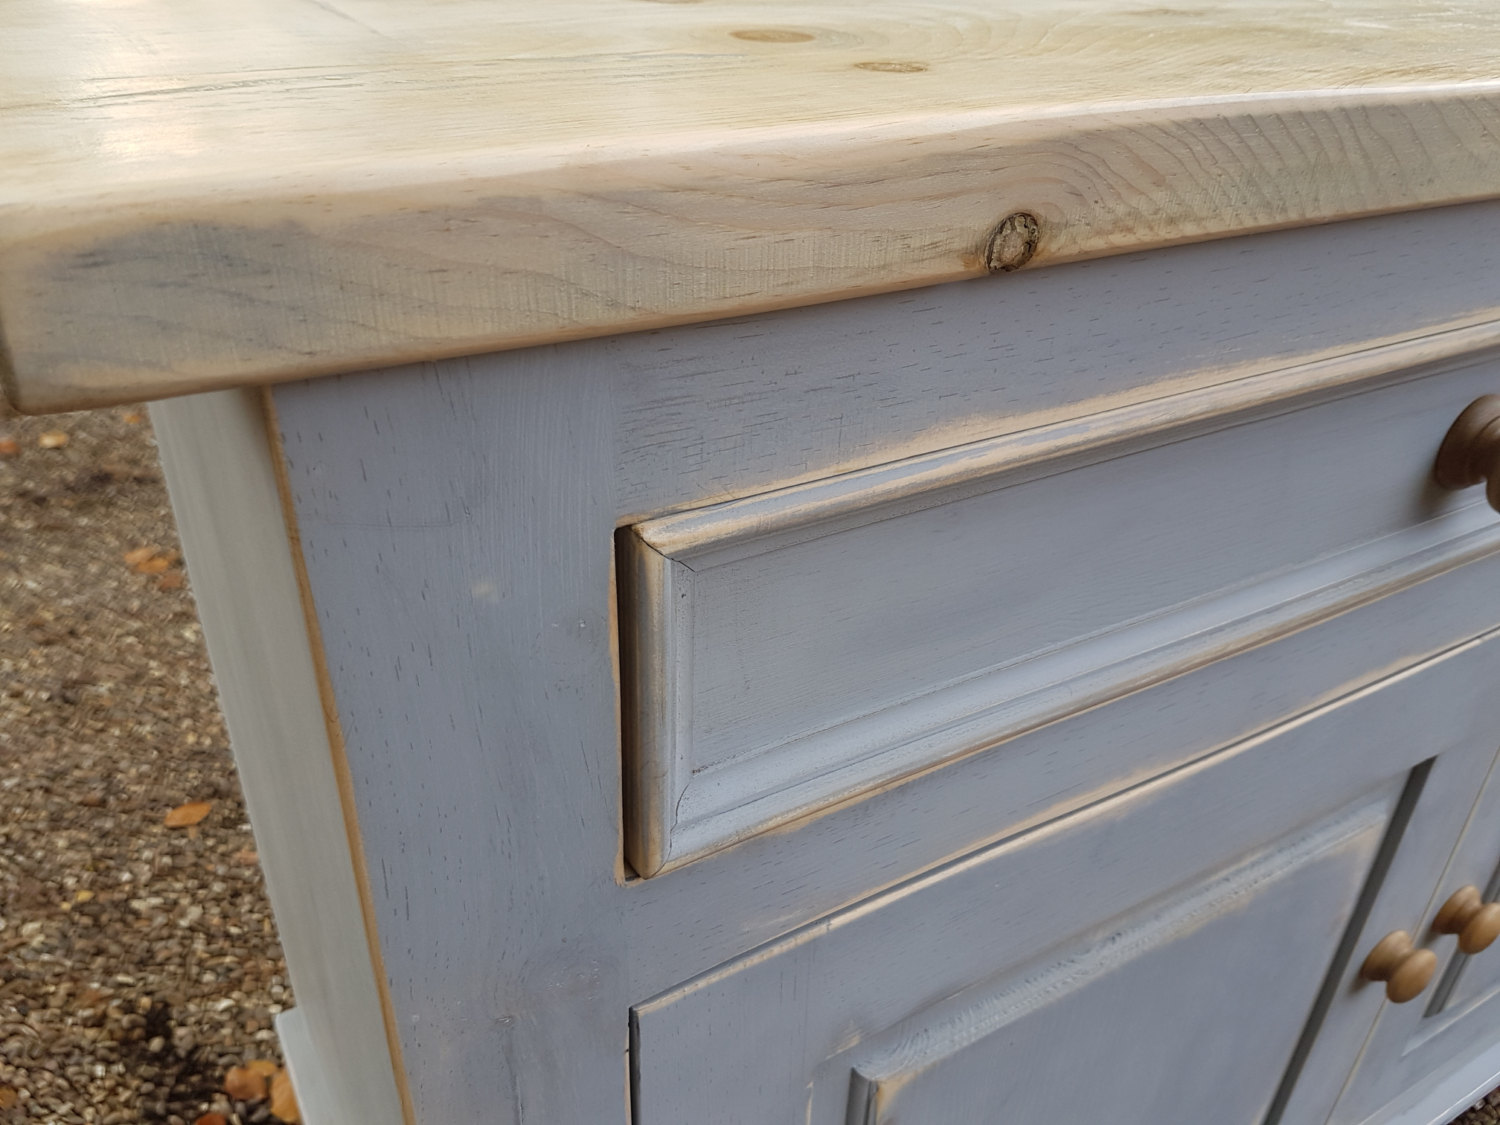 Bespoke Handmade Sideboard - Any Design or Specification